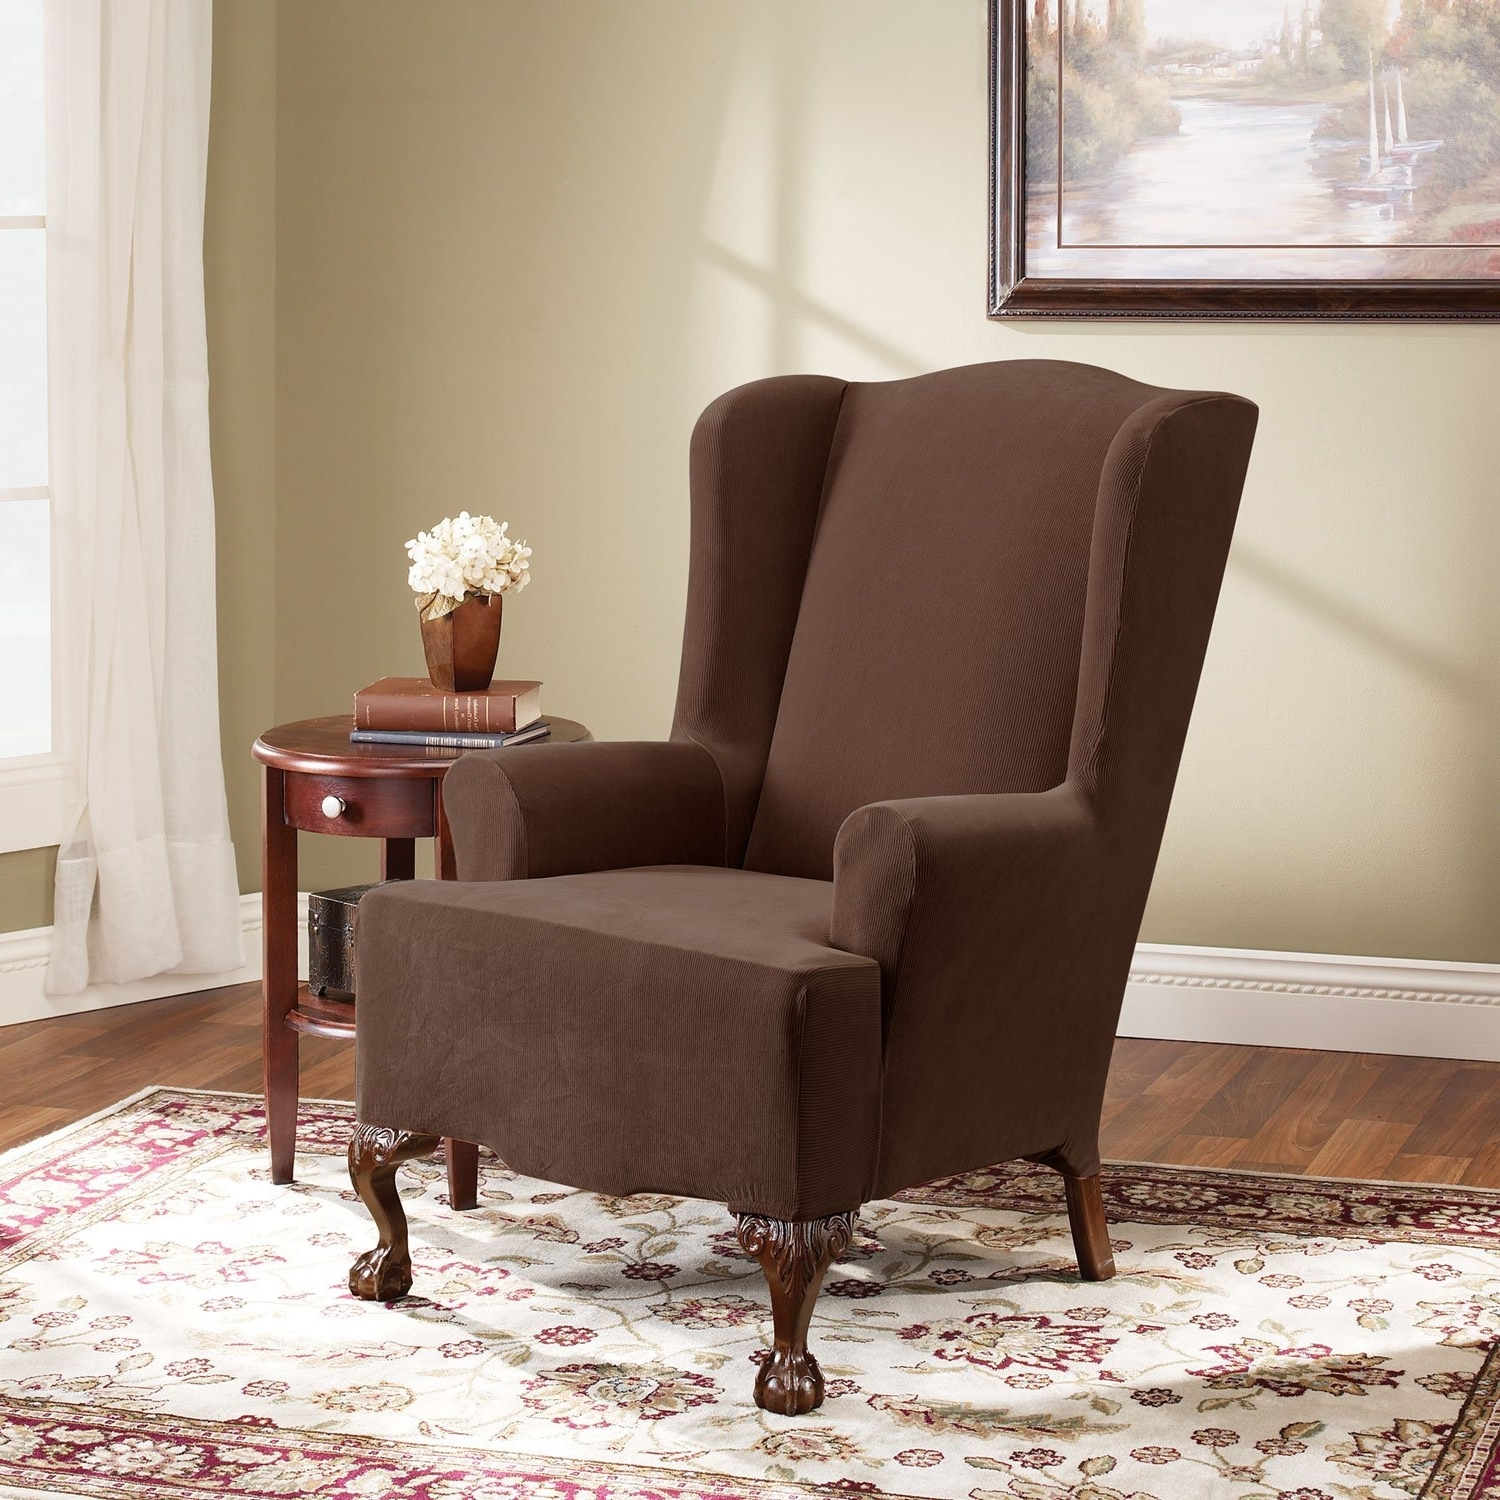 Add Style To Your Home With Upholstered Chairs For Living Room In Most Recent Single Sofa Chairs (View 2 of 20)